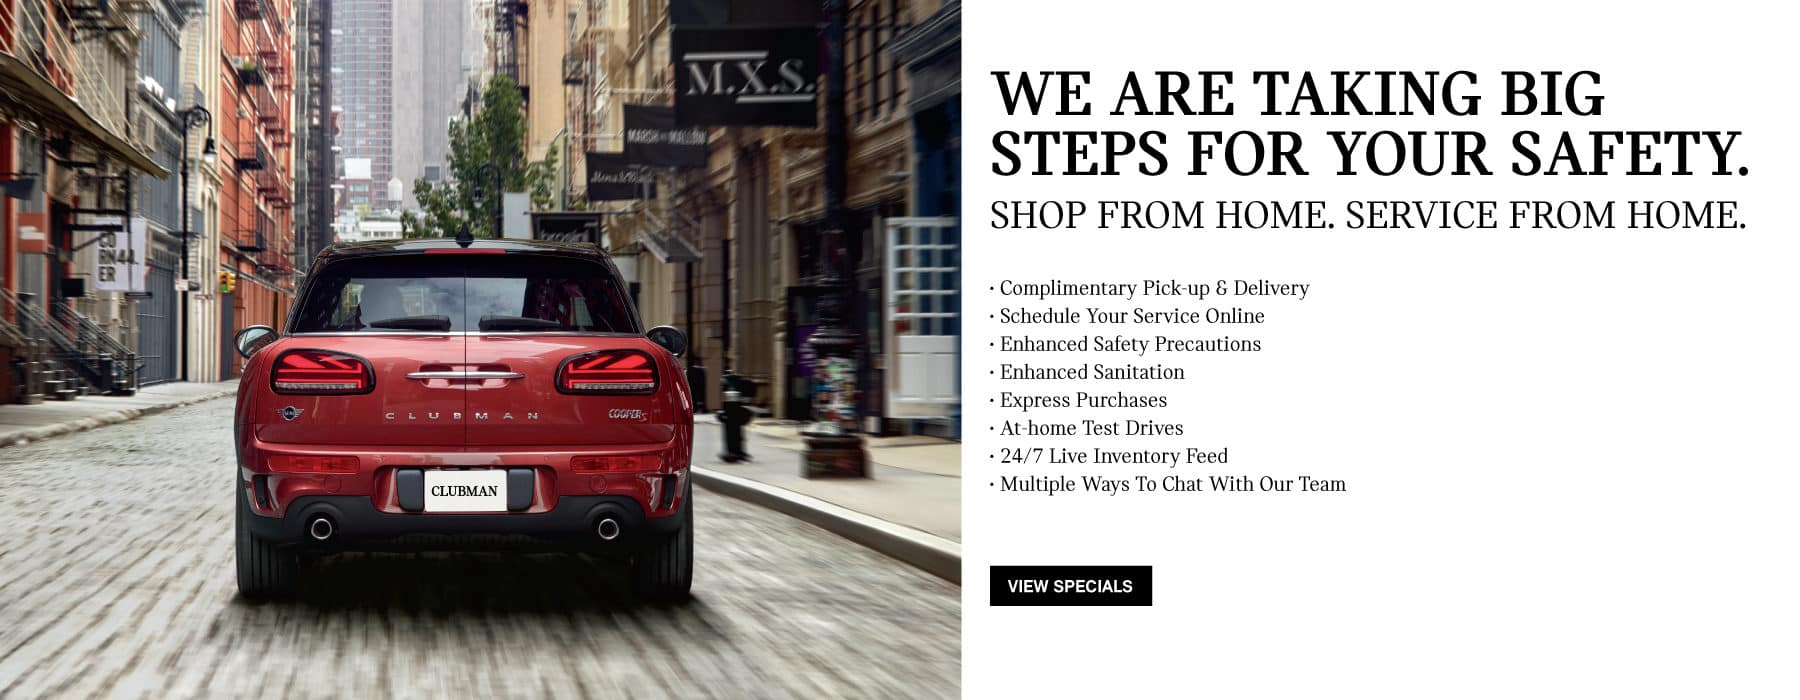 We are taking the step for your safety. Learn More